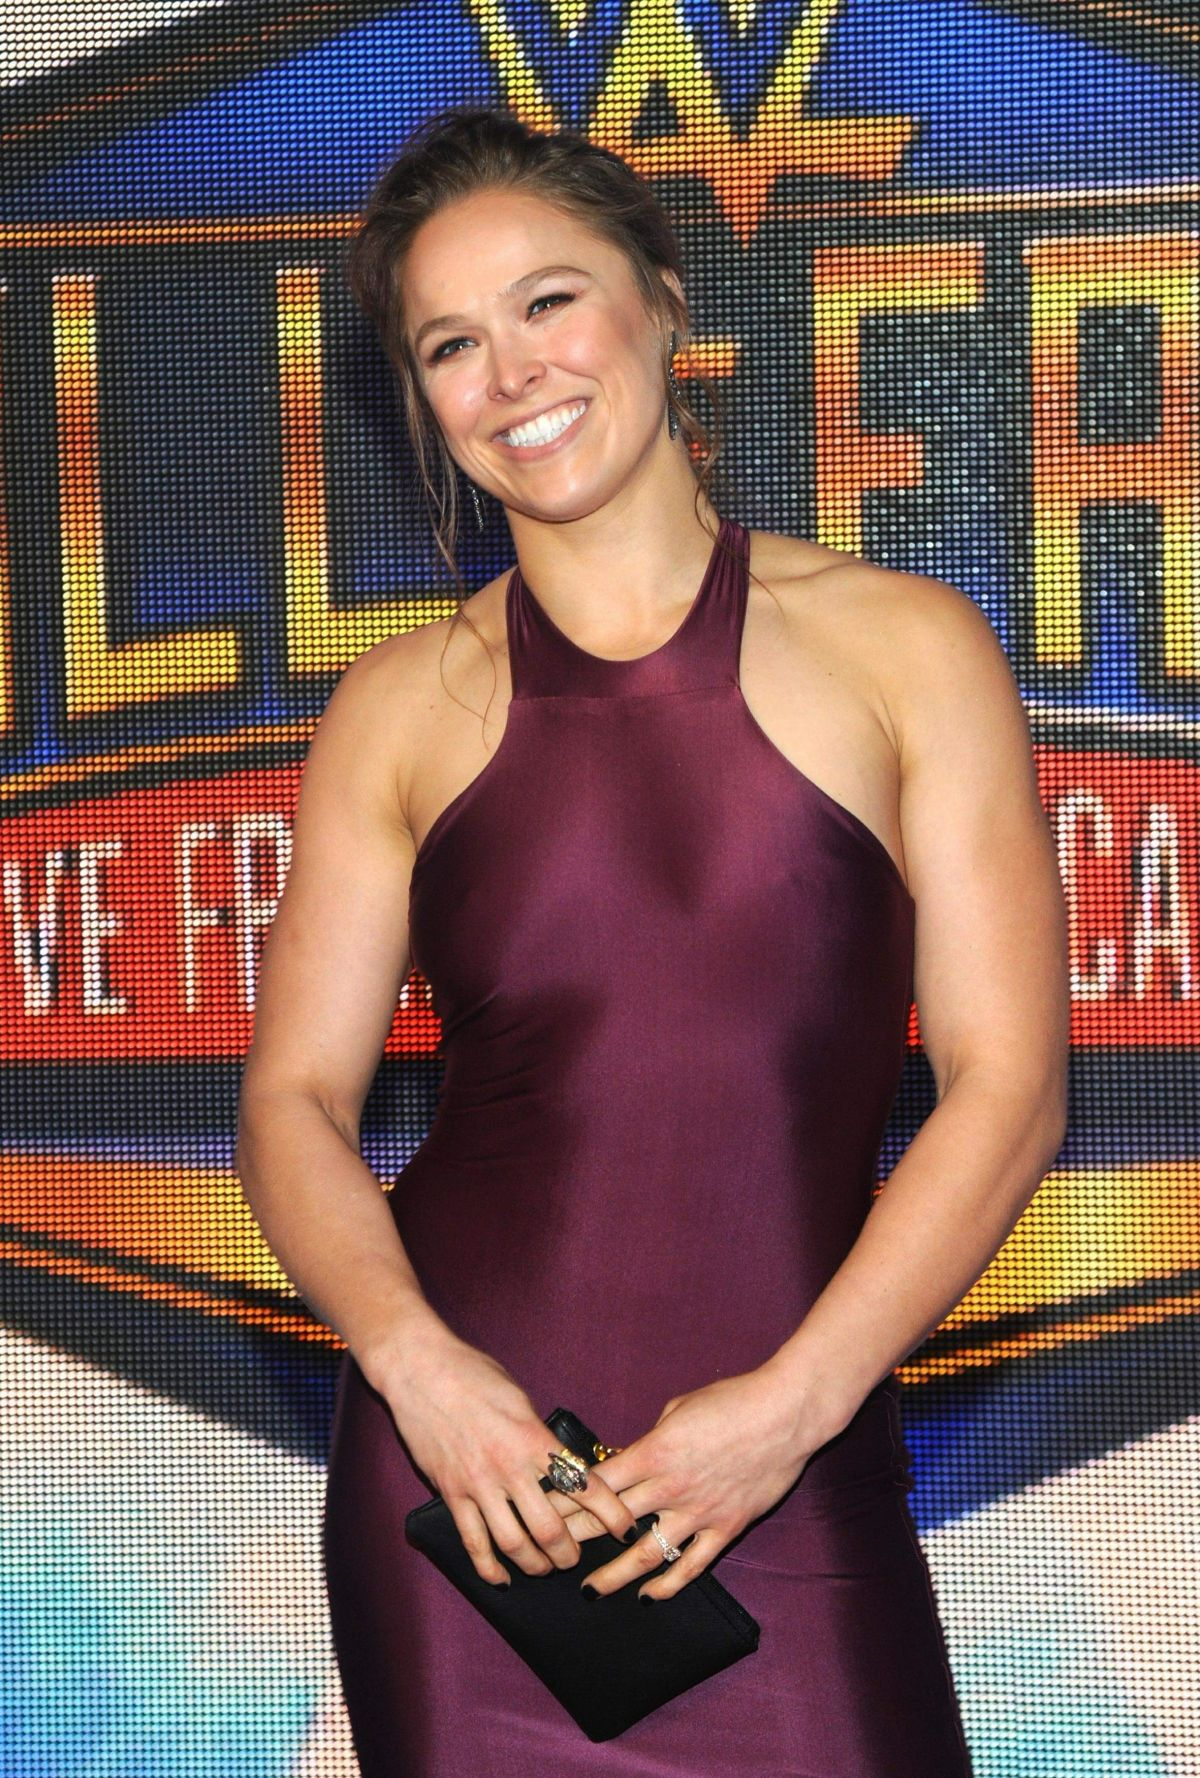 RONDA ROUSEY At WWE 2018 Hall Of Fame Induction Ceremony In New Orleans 04062018 HawtCelebs